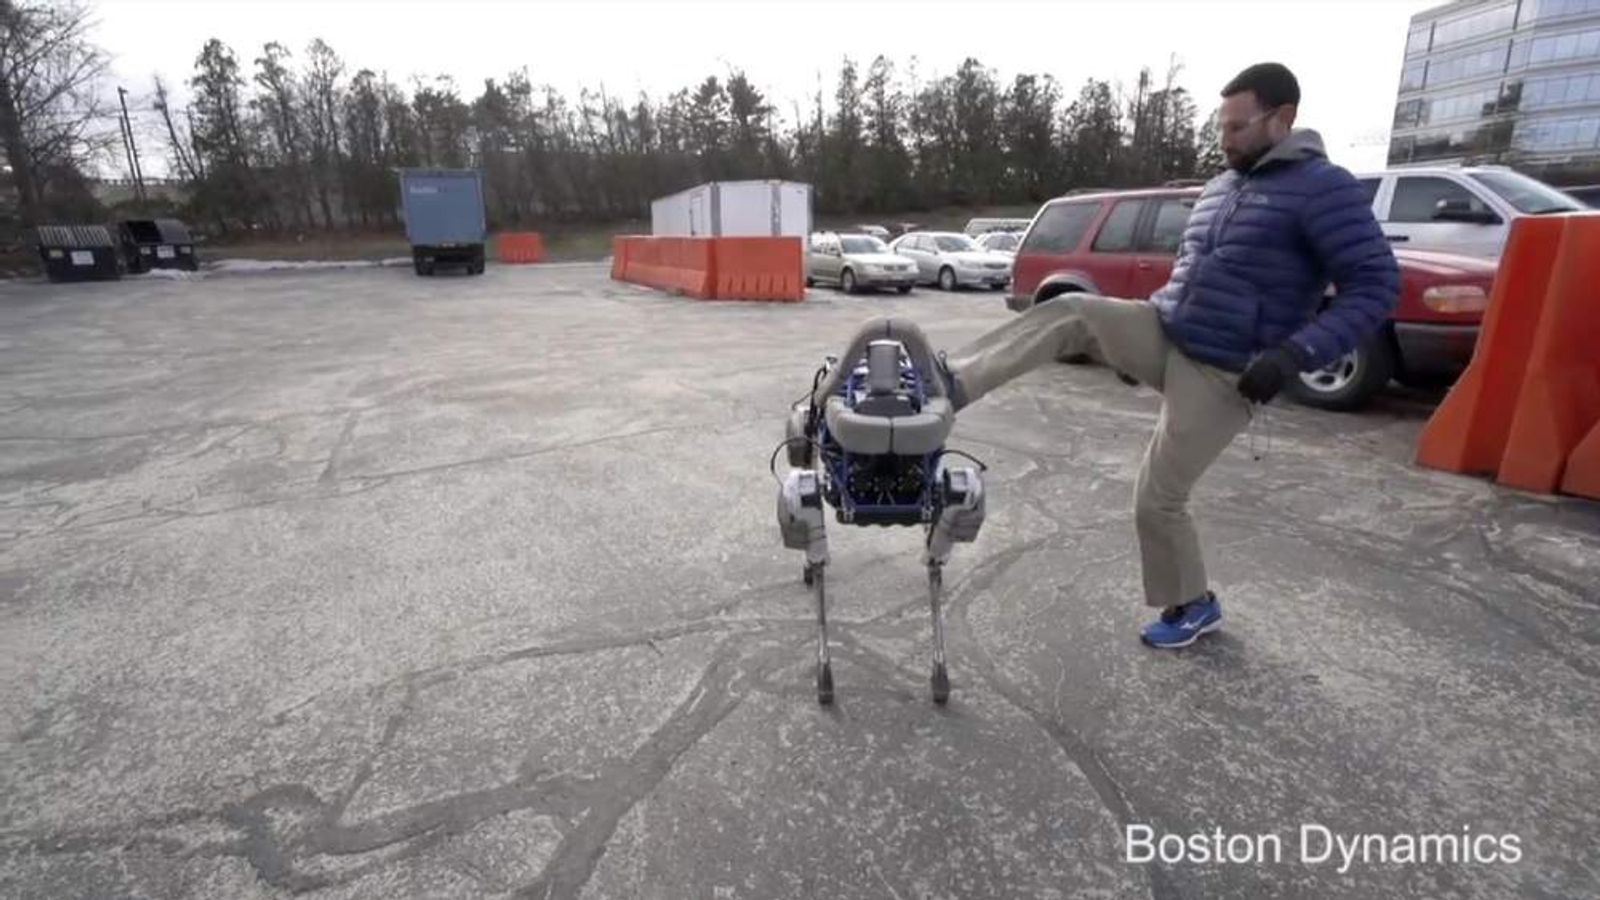 Boston Dynamics Robert Dog